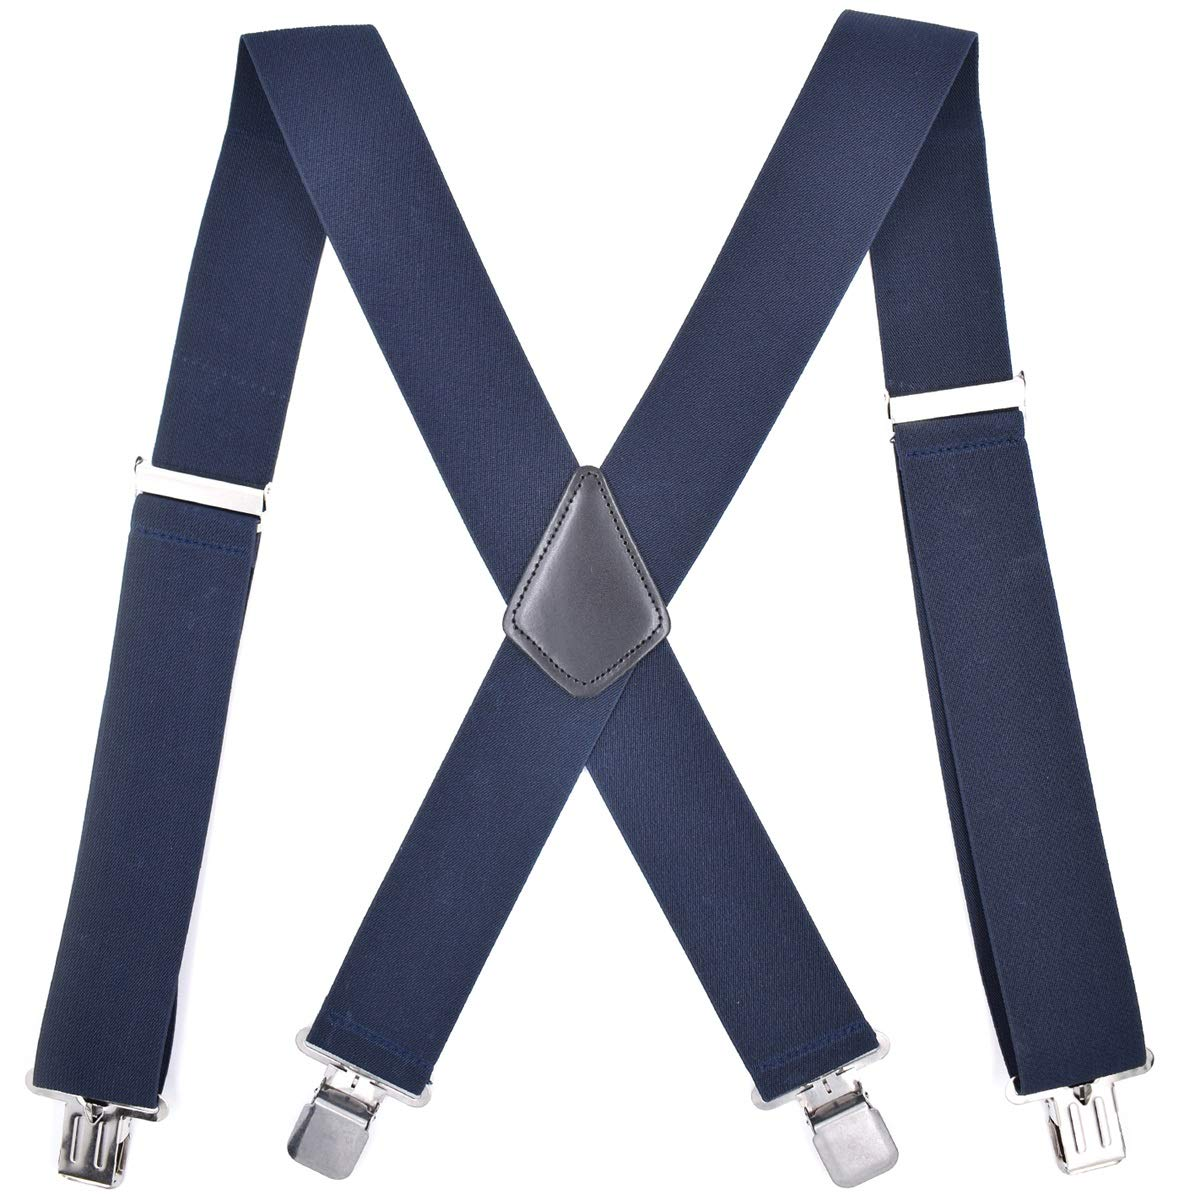 Men's Suspenders Clip-On Trousers Braces for Wedding Prom Work Birthday Wine Red Hisret Classic Mens Suspender